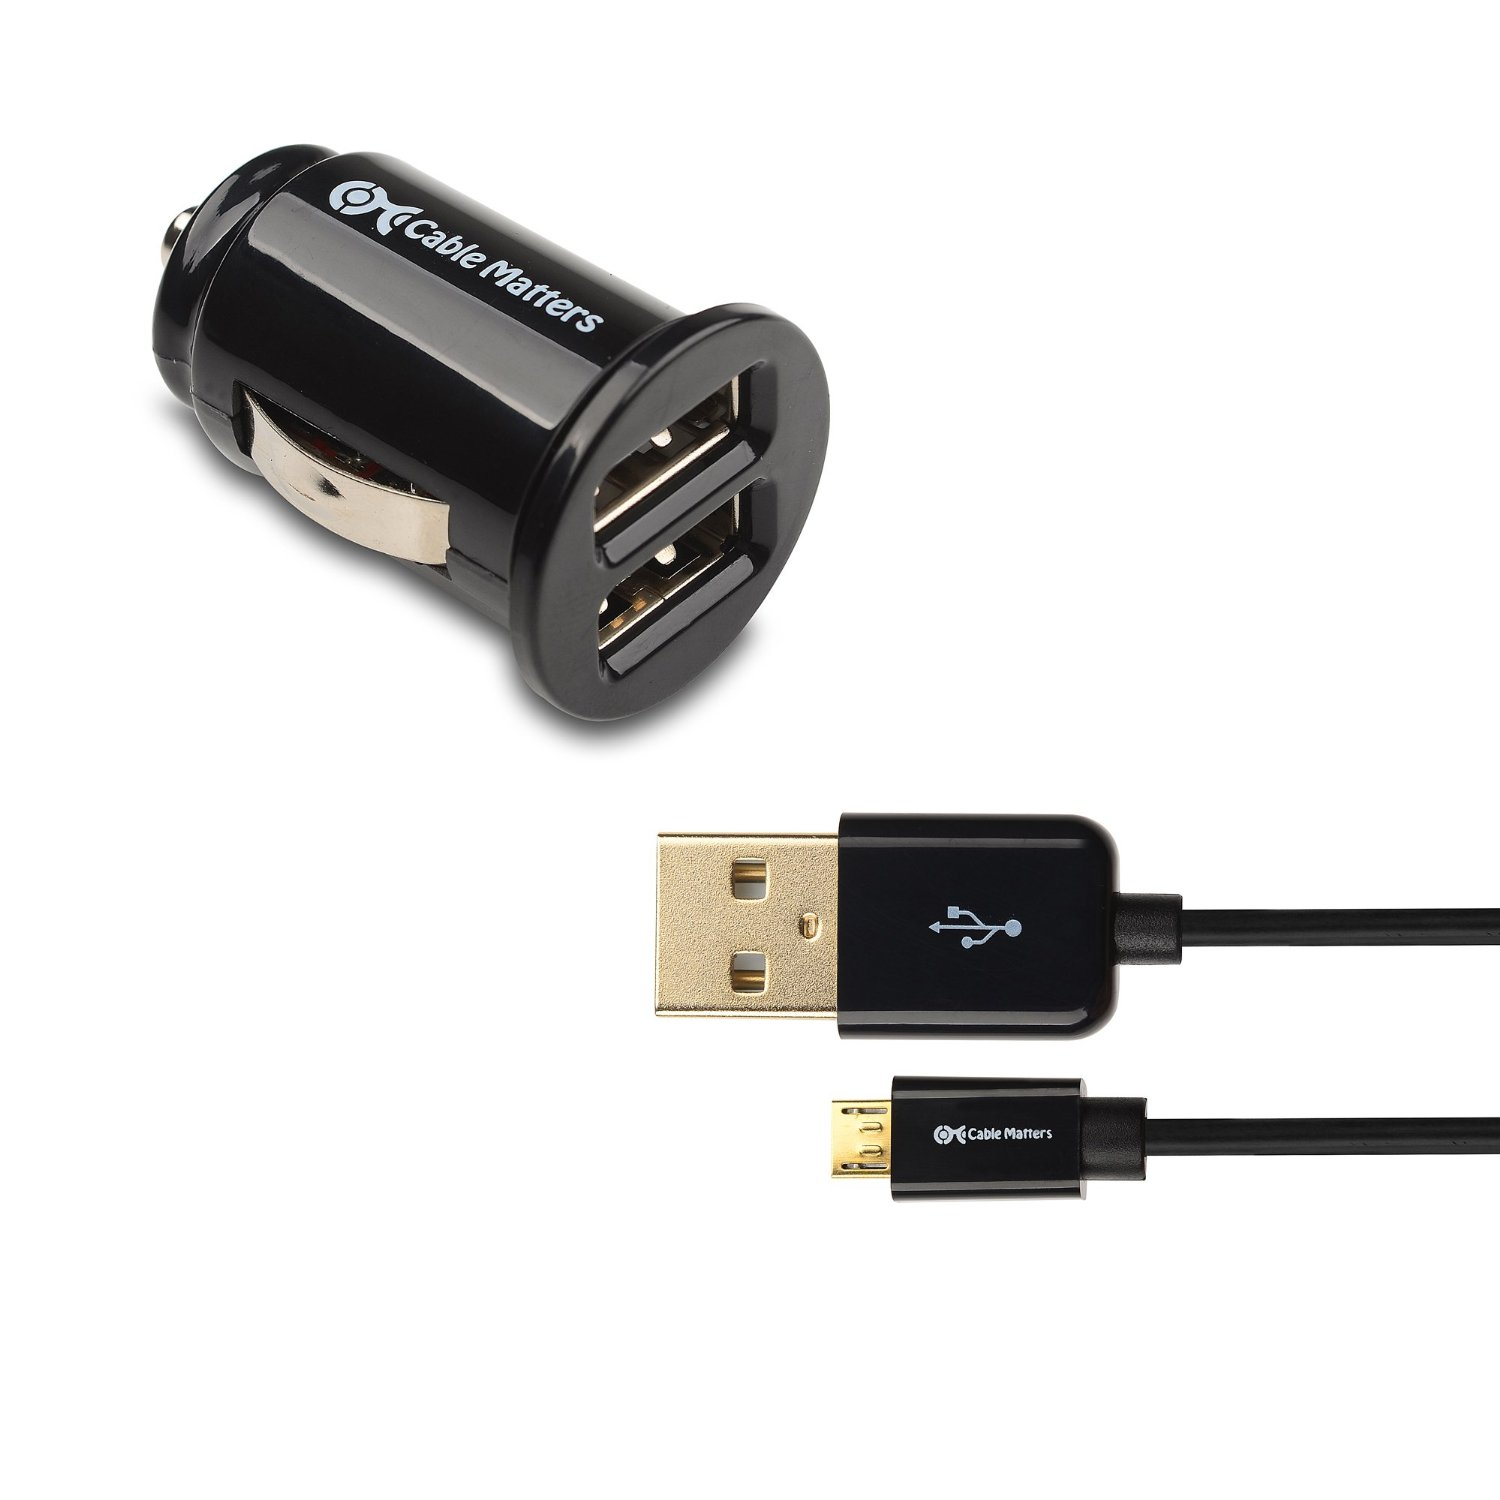 Cable Matters 10W 2A Mini USB Car Charger & Micro-USB Cable in Black